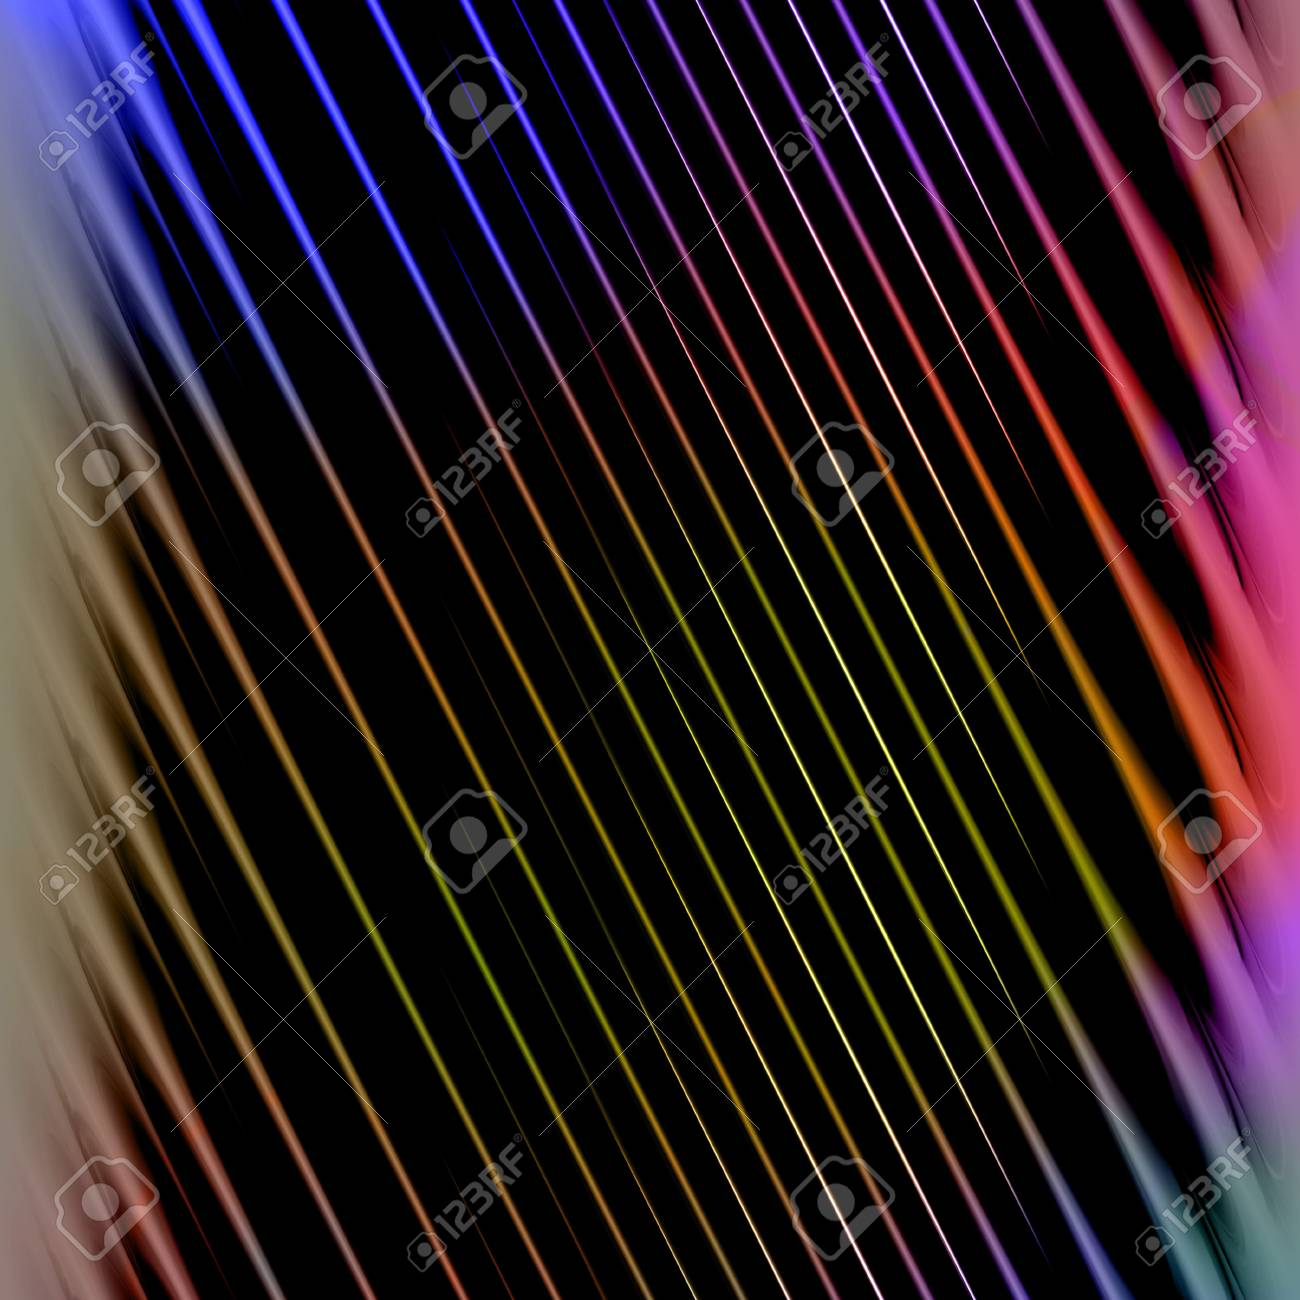 A background texture with rainbow colored diagonal stripes. Stock Photo - 4876369